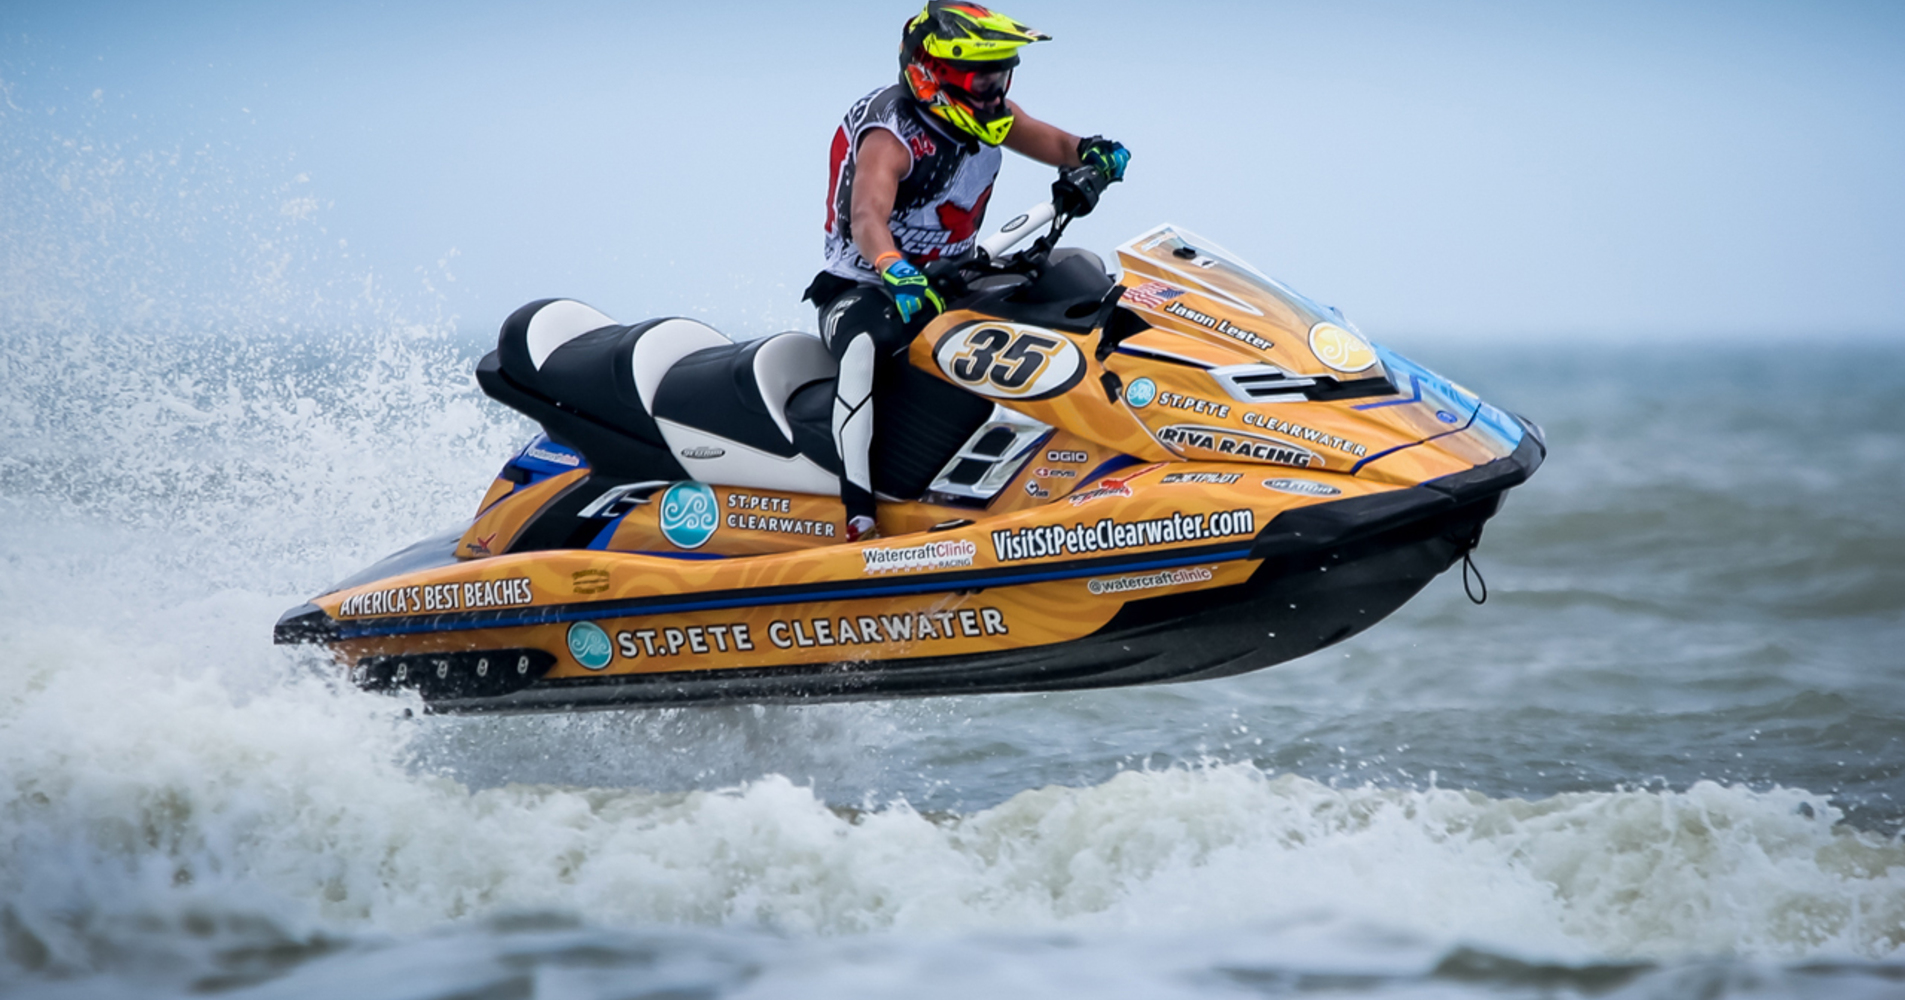 St Pete Beach/Clearwater rider Jason Lester